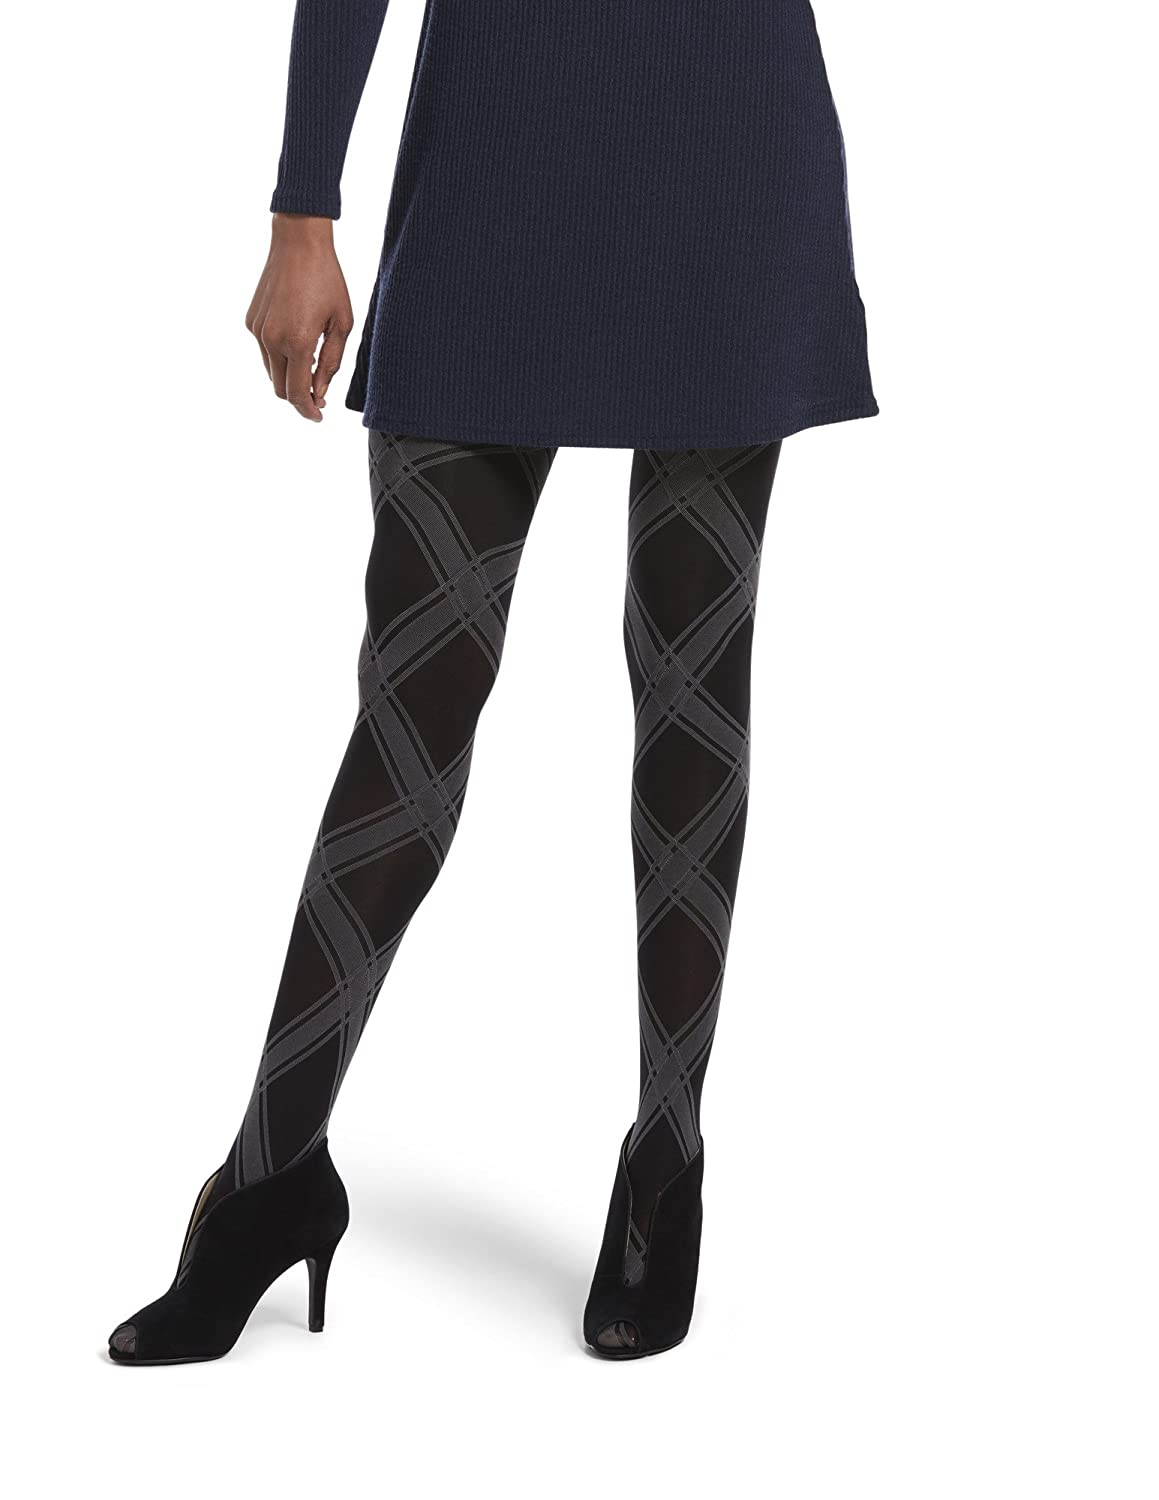 HUE Women's Made to Move Shaping Tights, Assorted